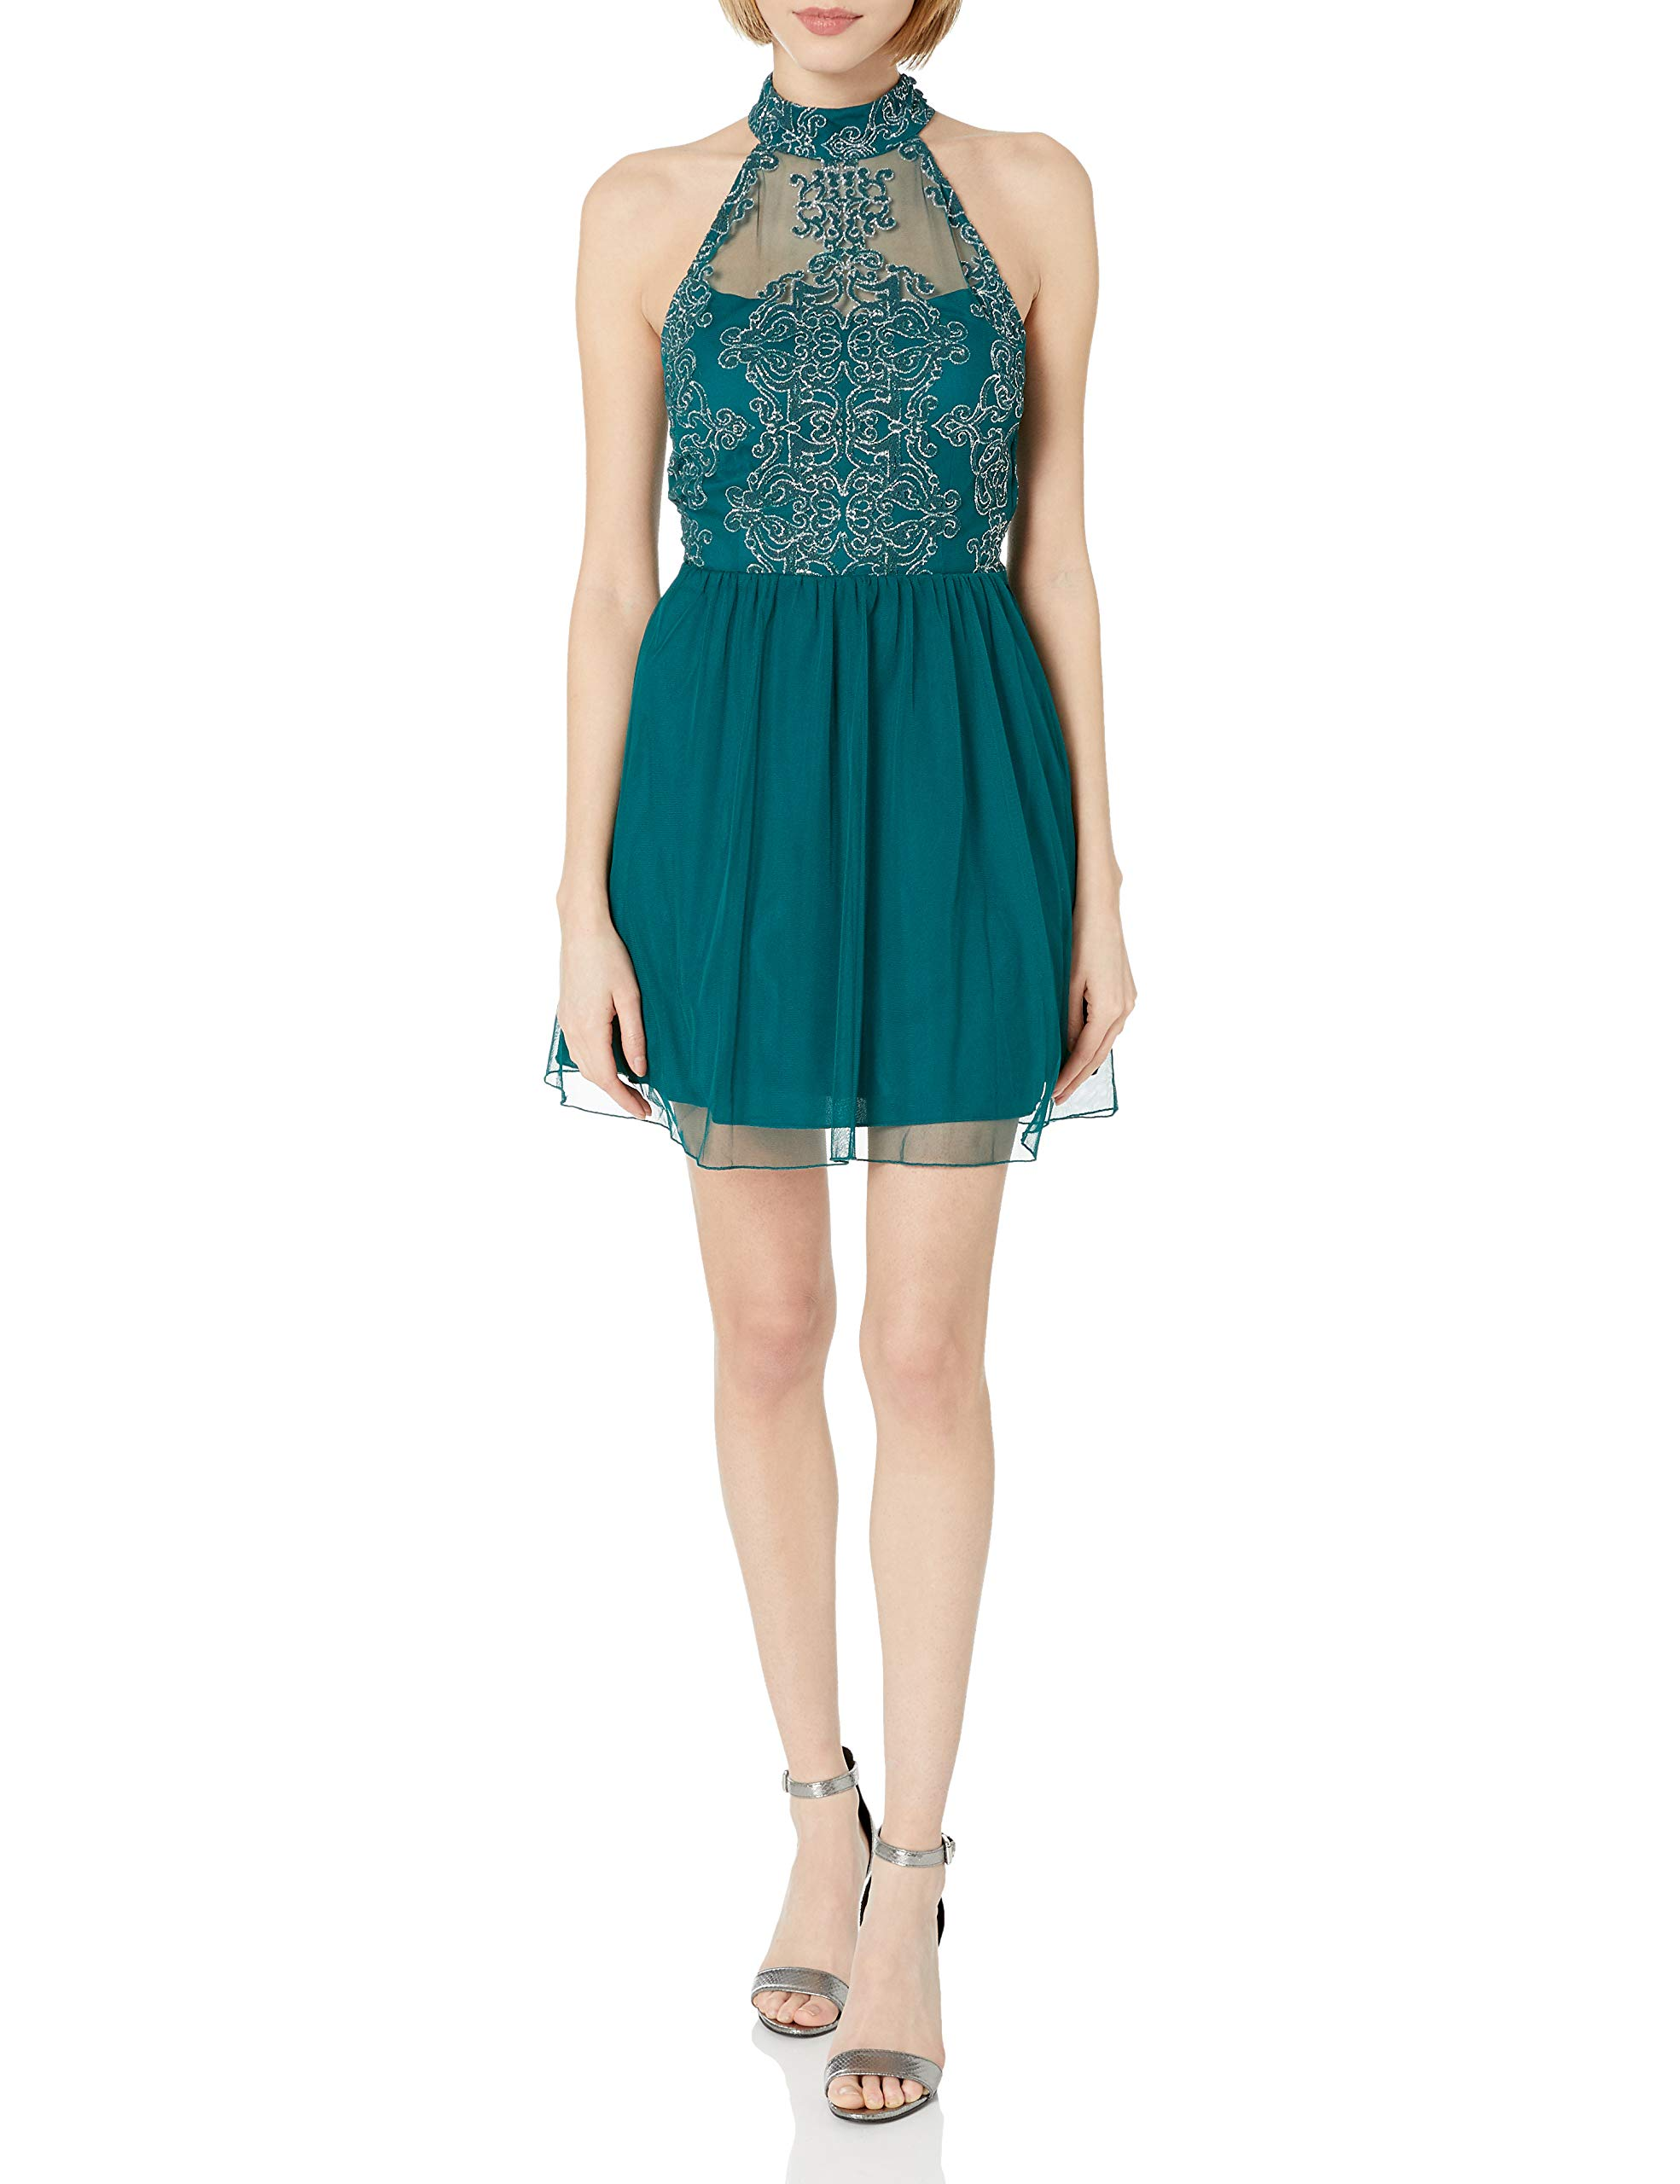 Available at Amazon: Speechless Women's Mock Neck Party Dress